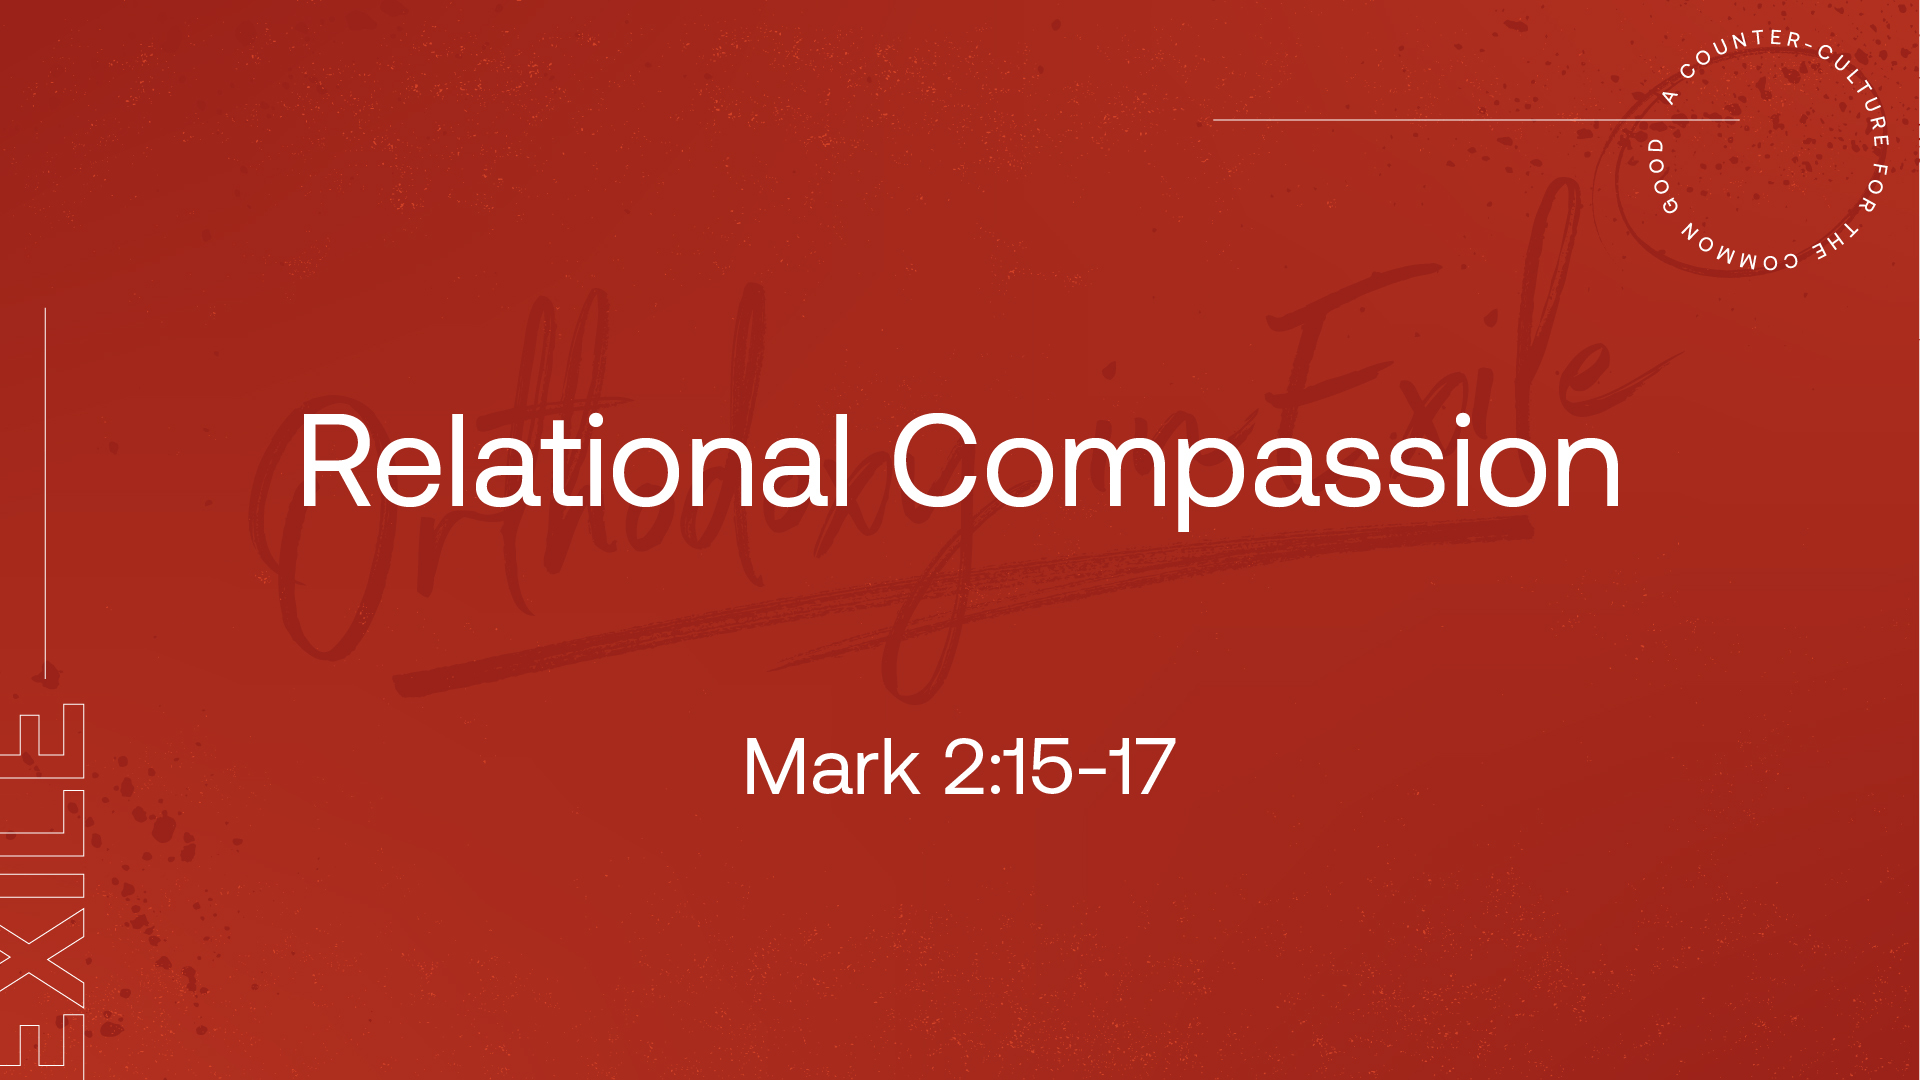 Relational Compassion